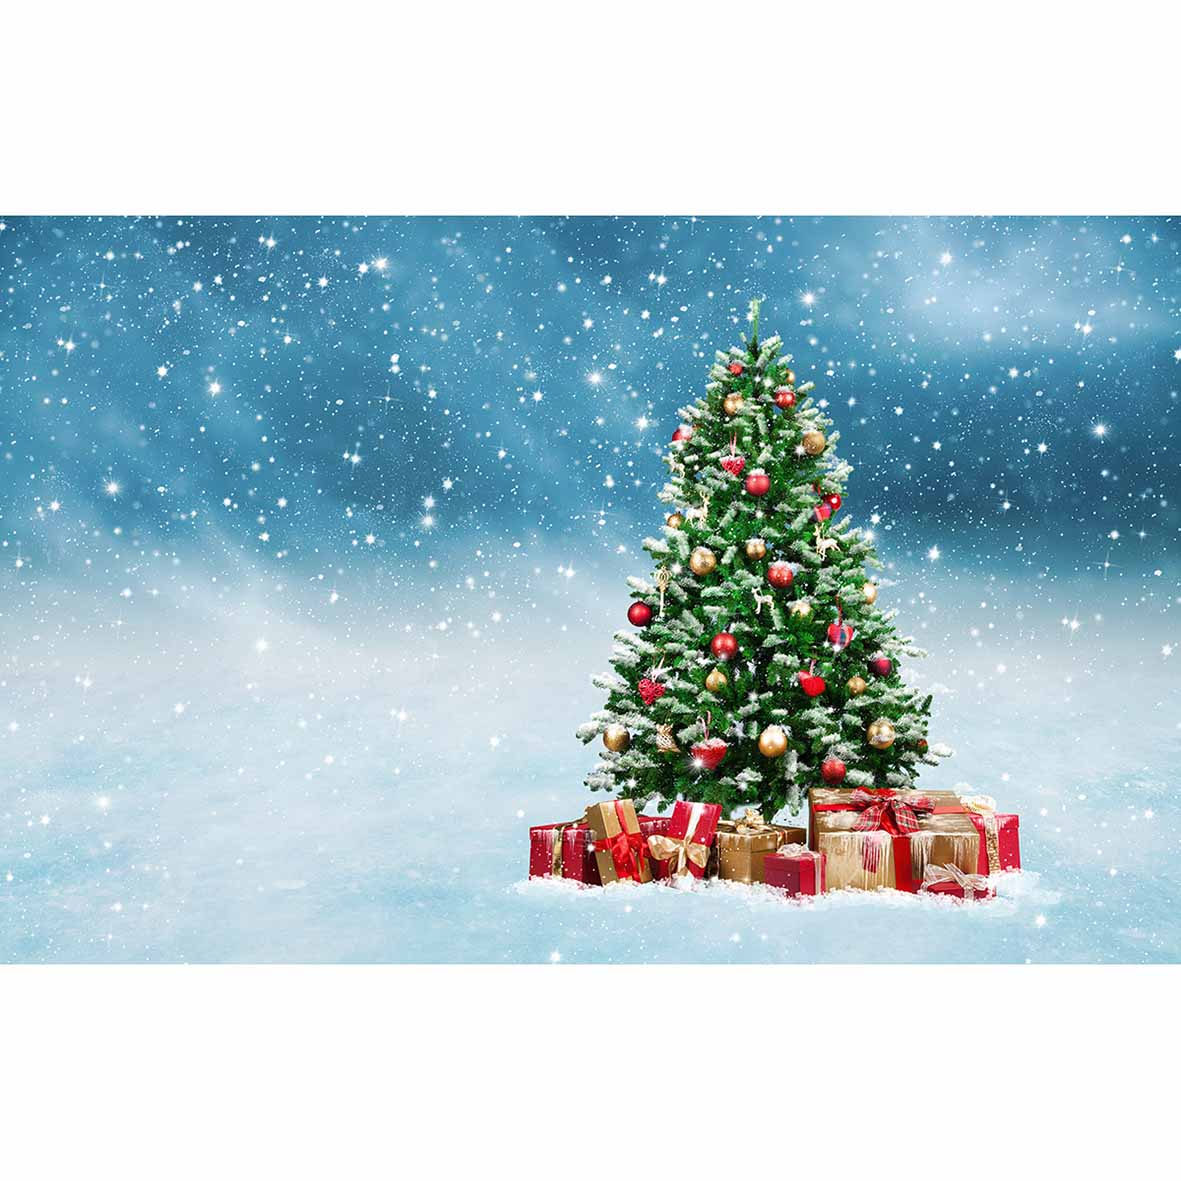 Allenjoy Photo Backdrops Winter Snow Christmas Tree Gift Children